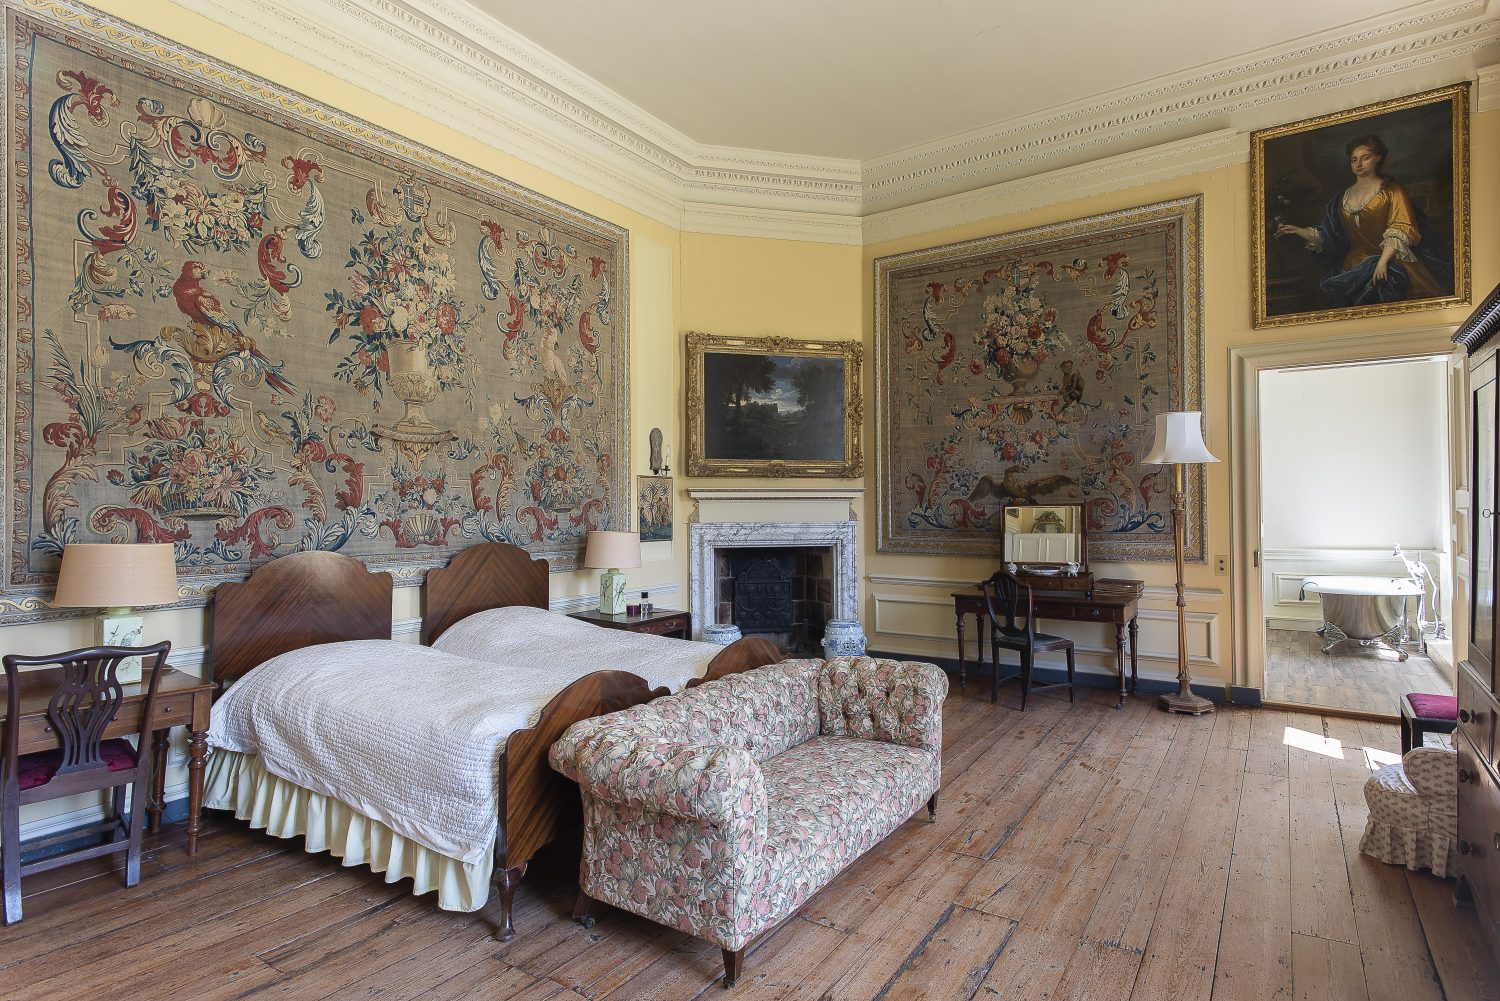 Two splendid tapestries, which hang in the bedroom over the dining room, were commissioned by the wife of John Warde, who bought the house in 1731